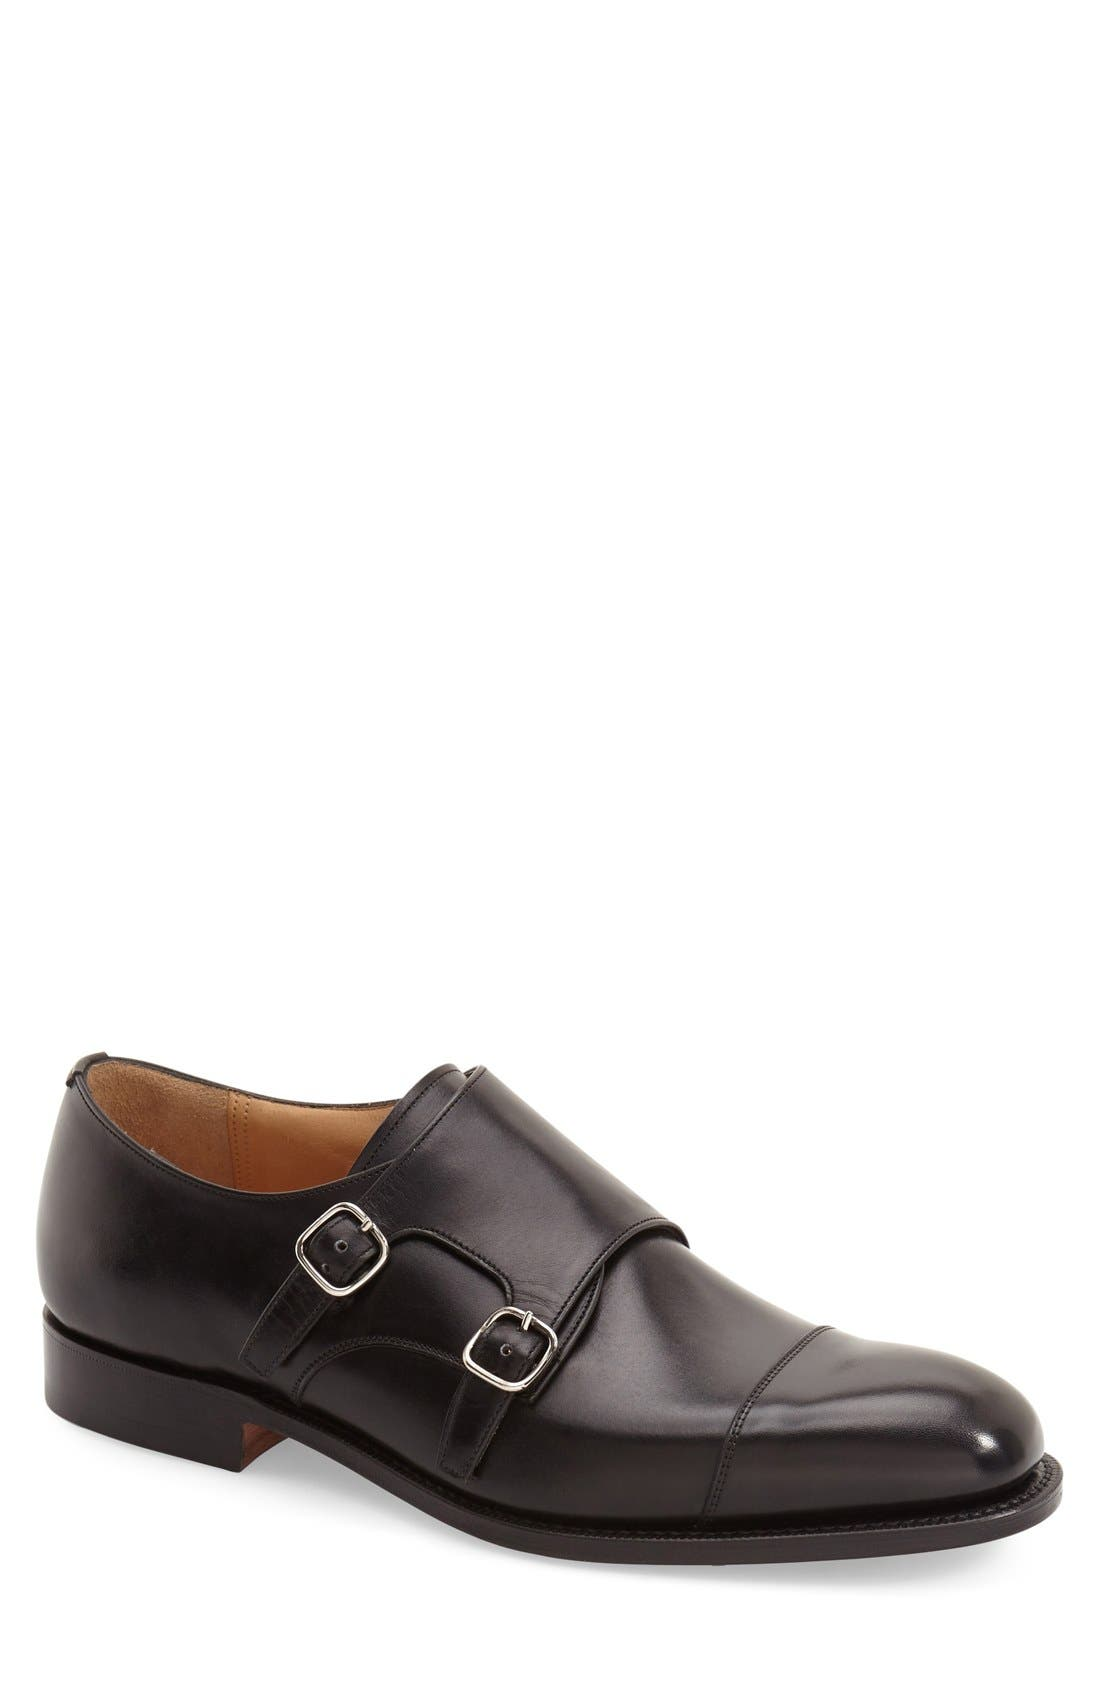 Main Image - Church's 'Cowes' Double Monk Strap Shoe (Men)